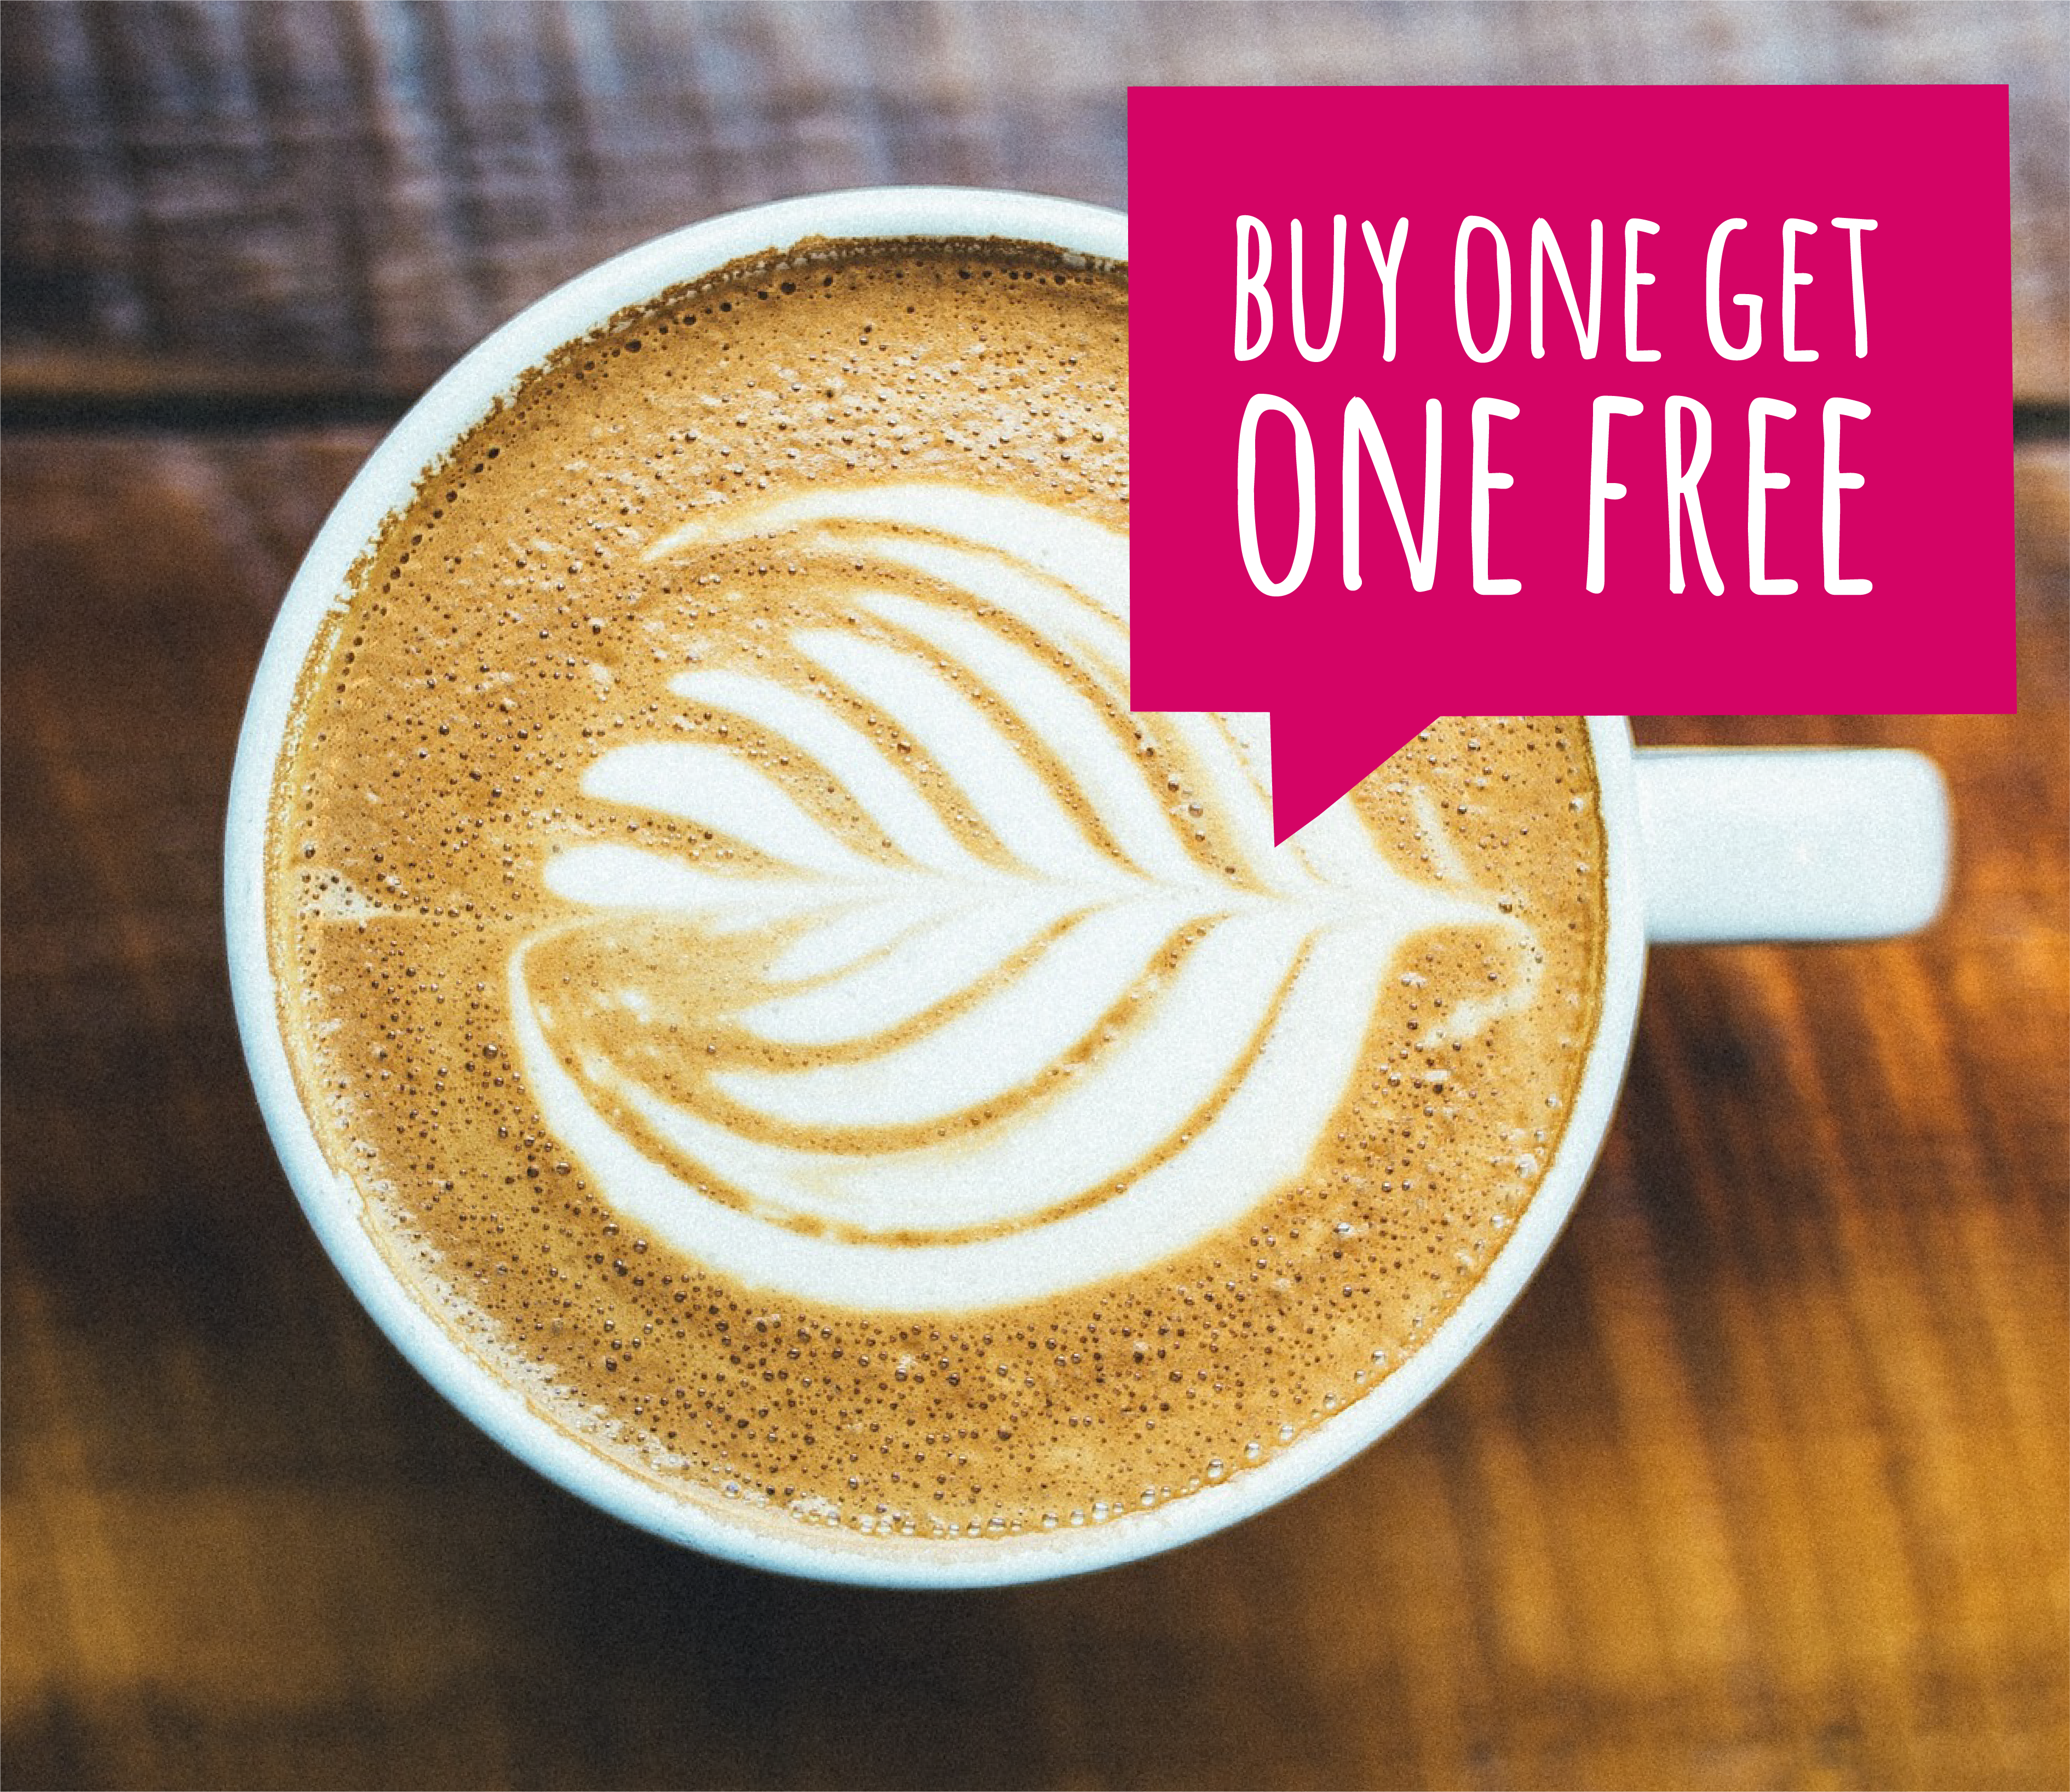 Buy one get one free coffee